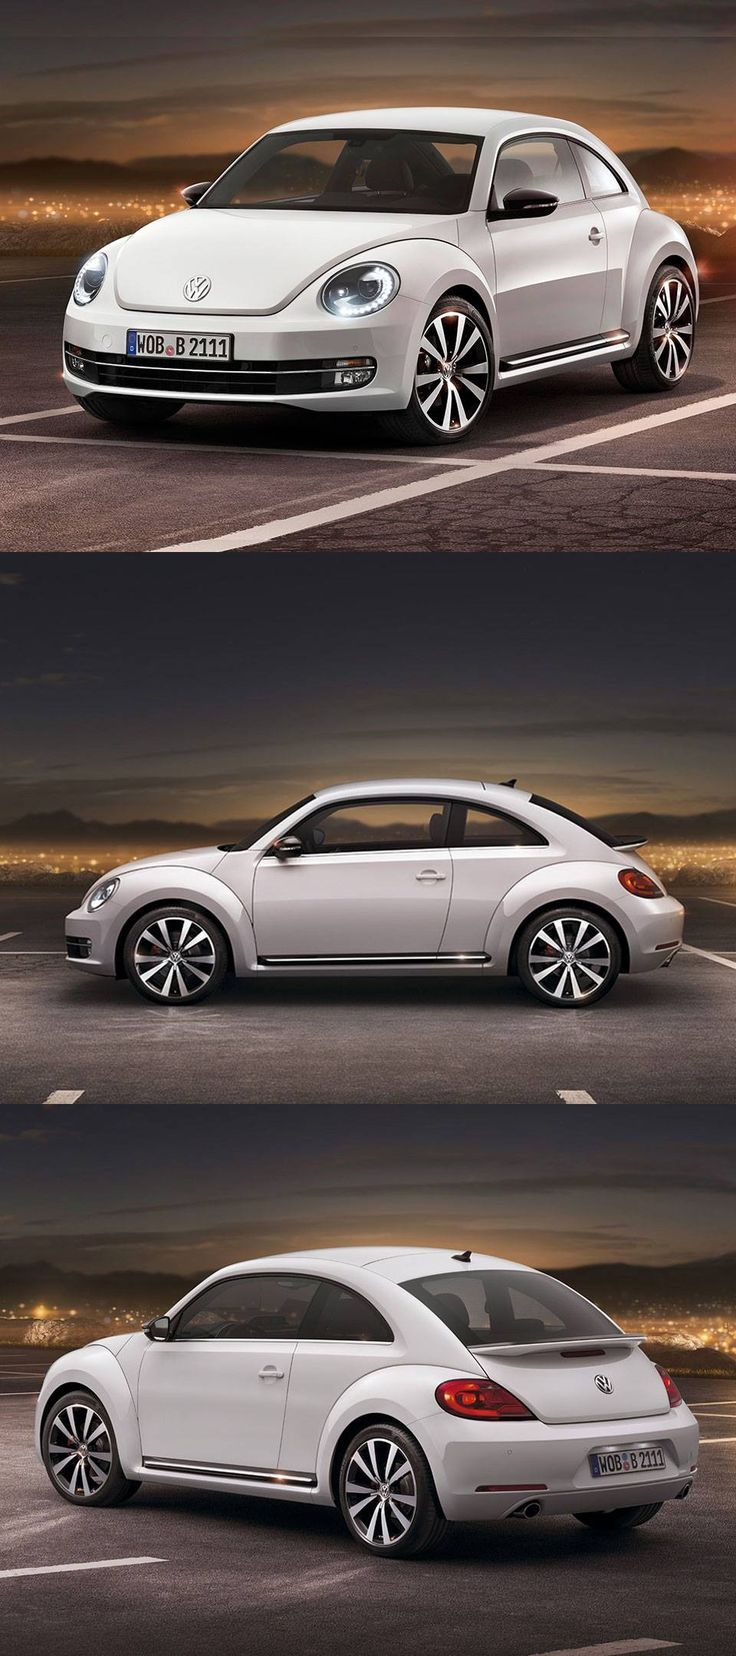 The new volkswagen beetle has a surprising fresh new look with a